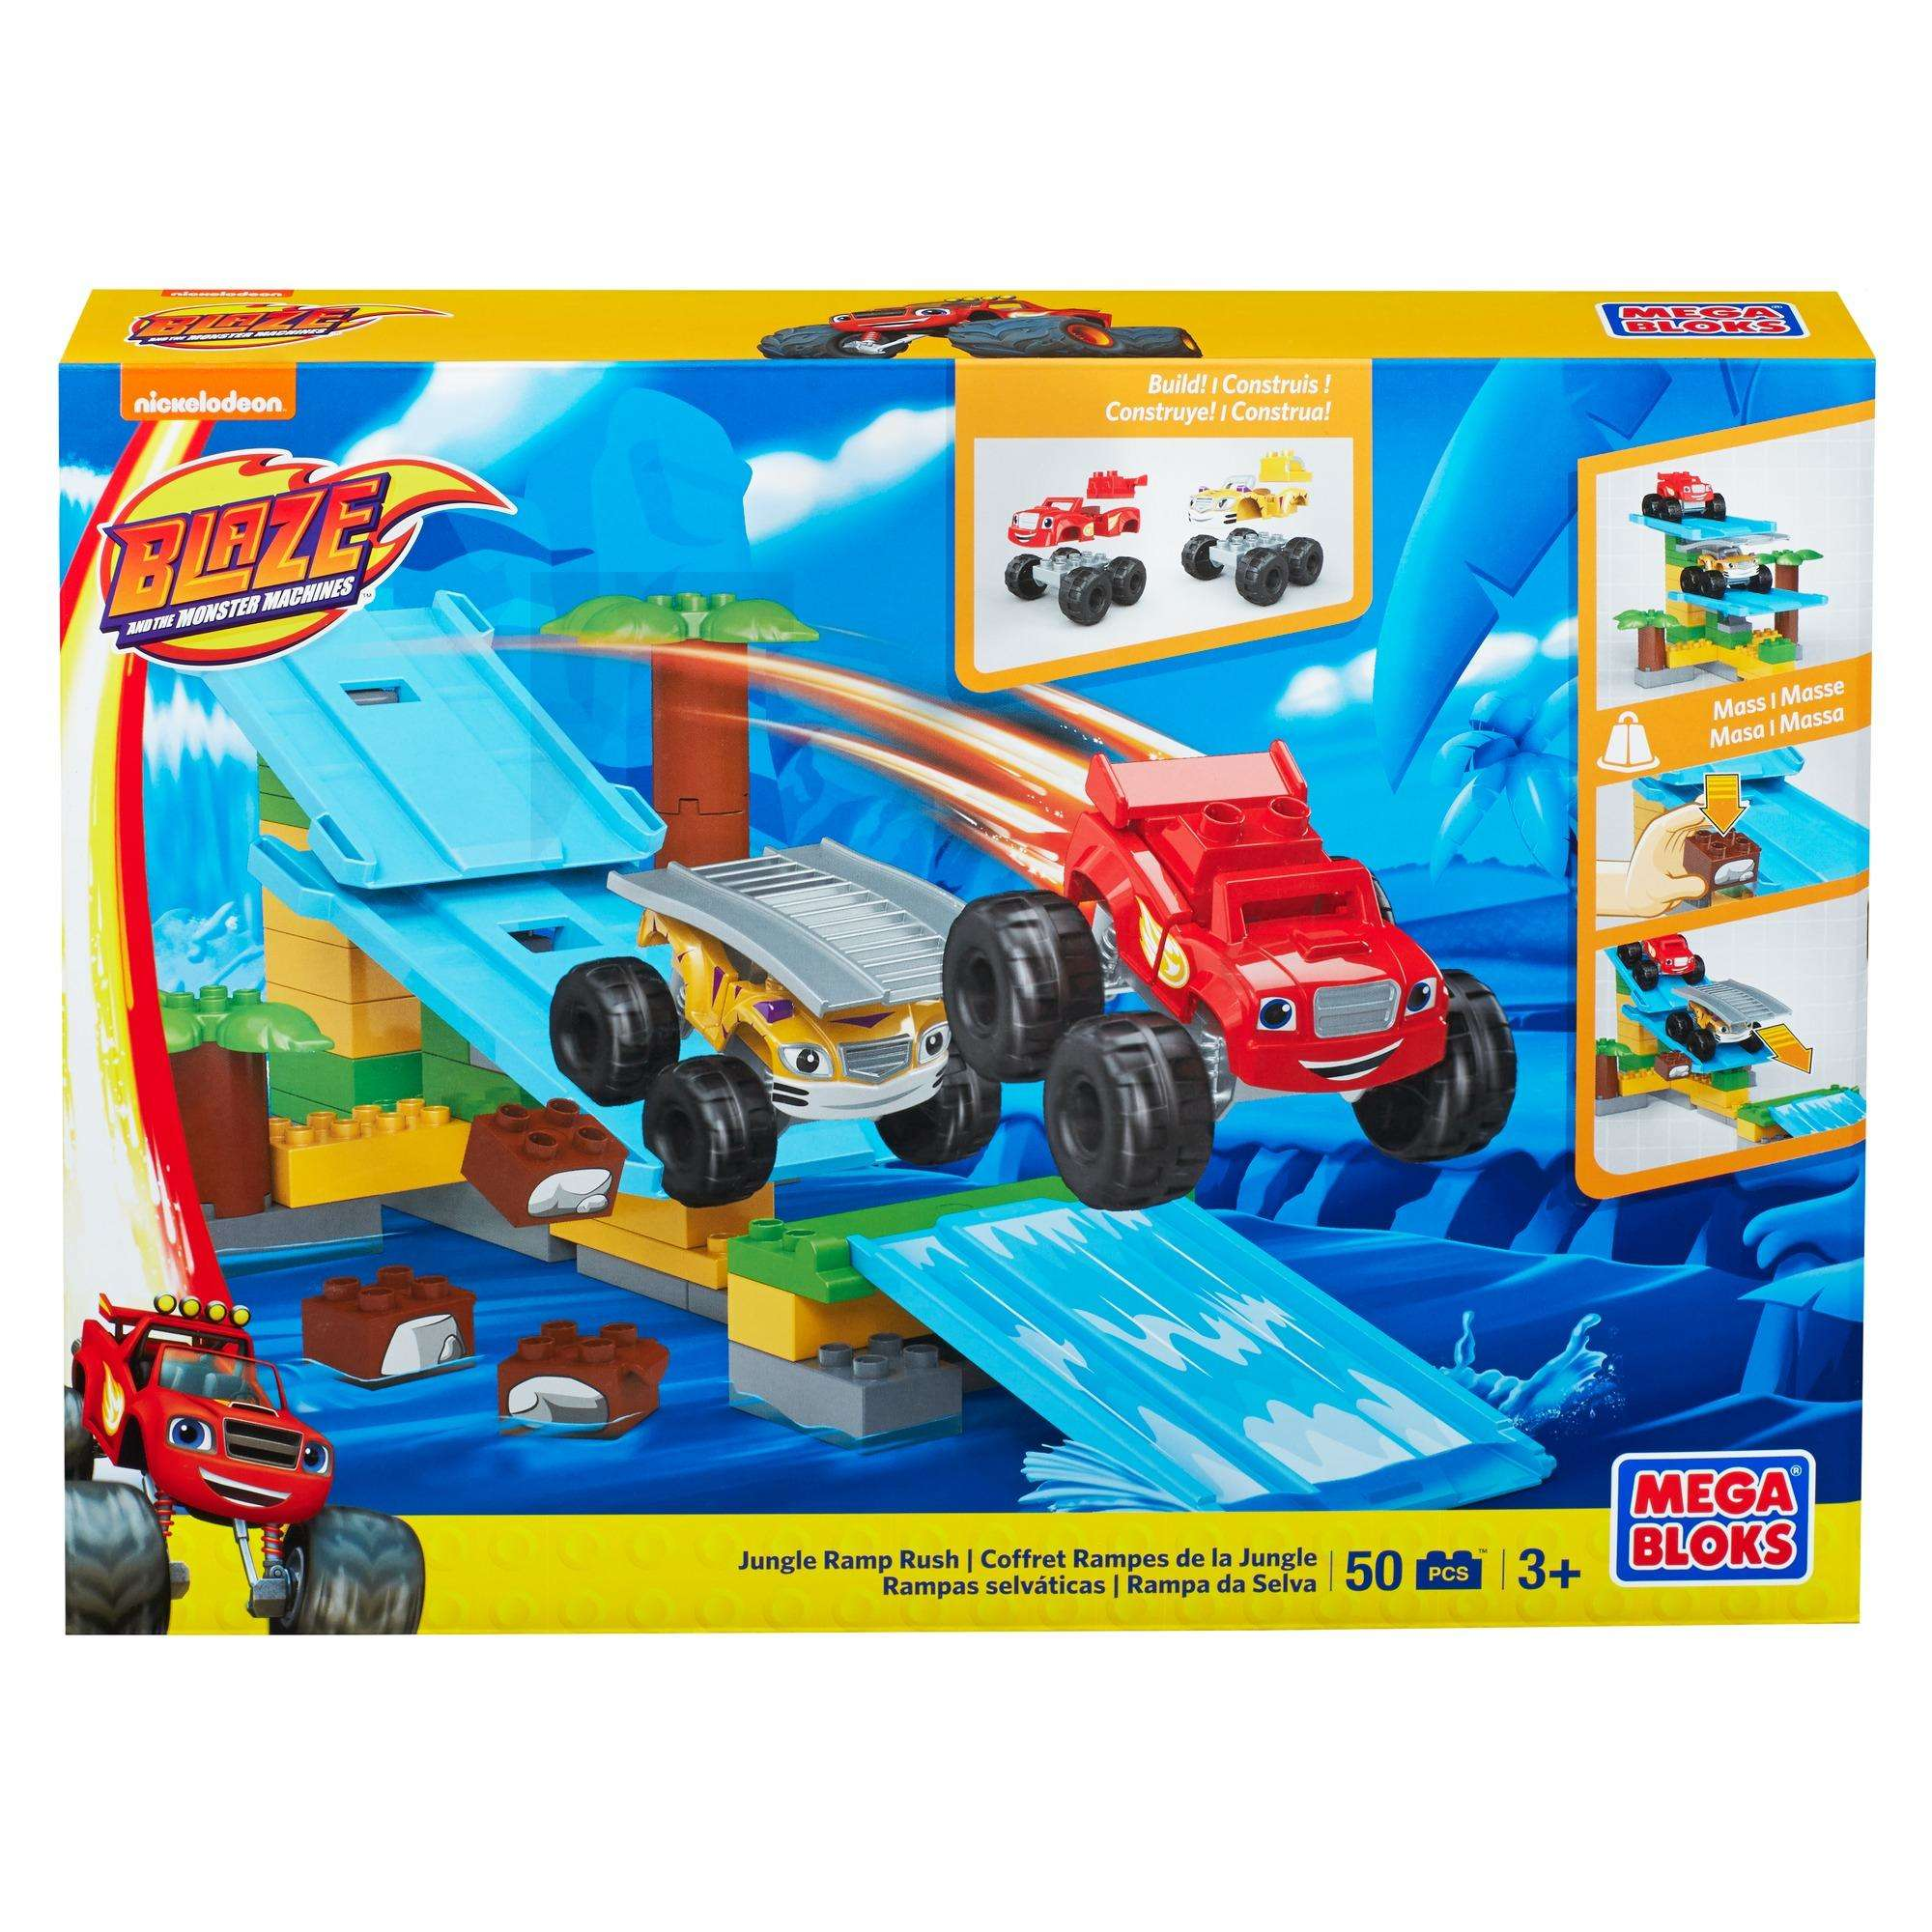 Mega Bloks Nickelodeon Blaze and the Monster Machines Jungle Ramp Rush